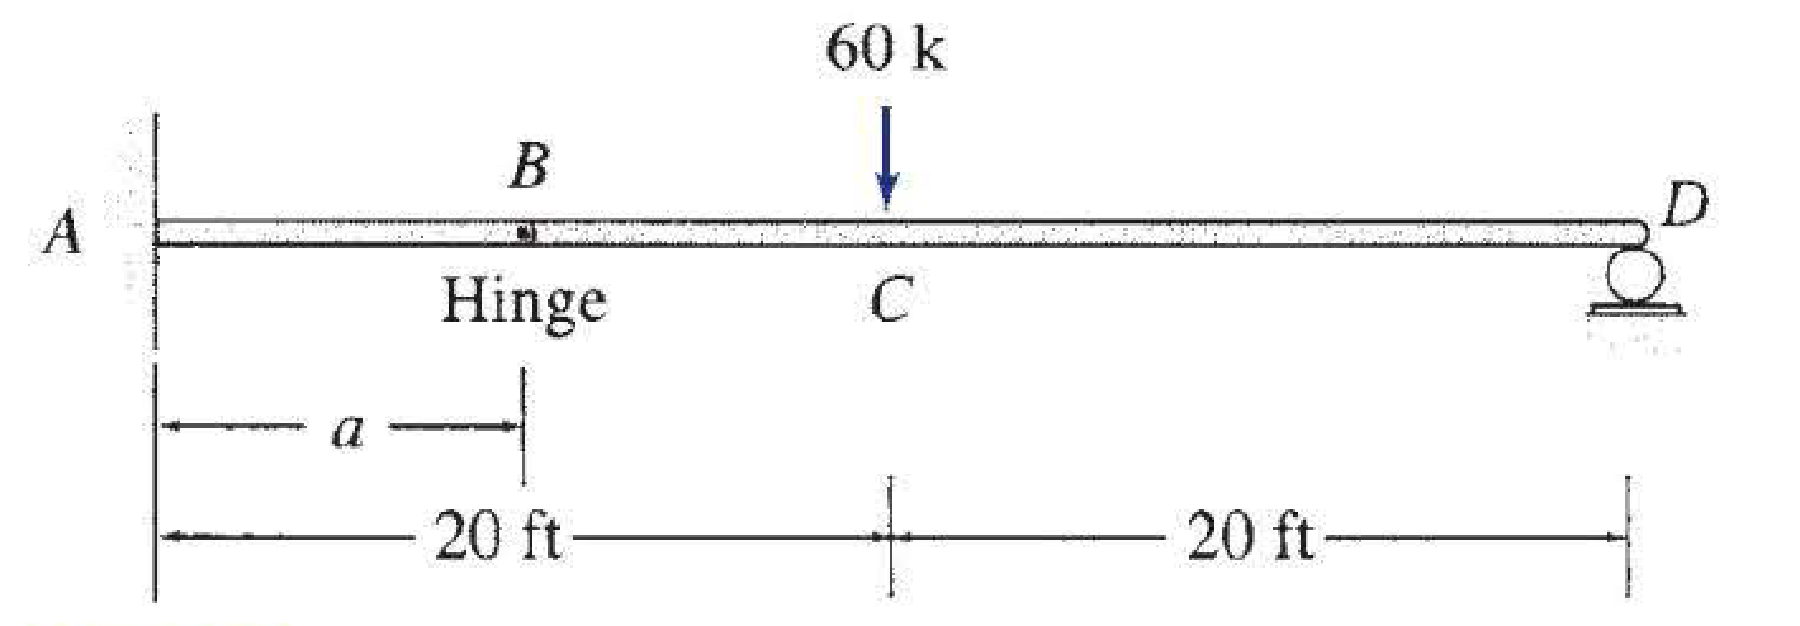 Chapter 5, Problem 54P, For the beam shown: (a) determine the distance a for which the maximum positive and negative bending